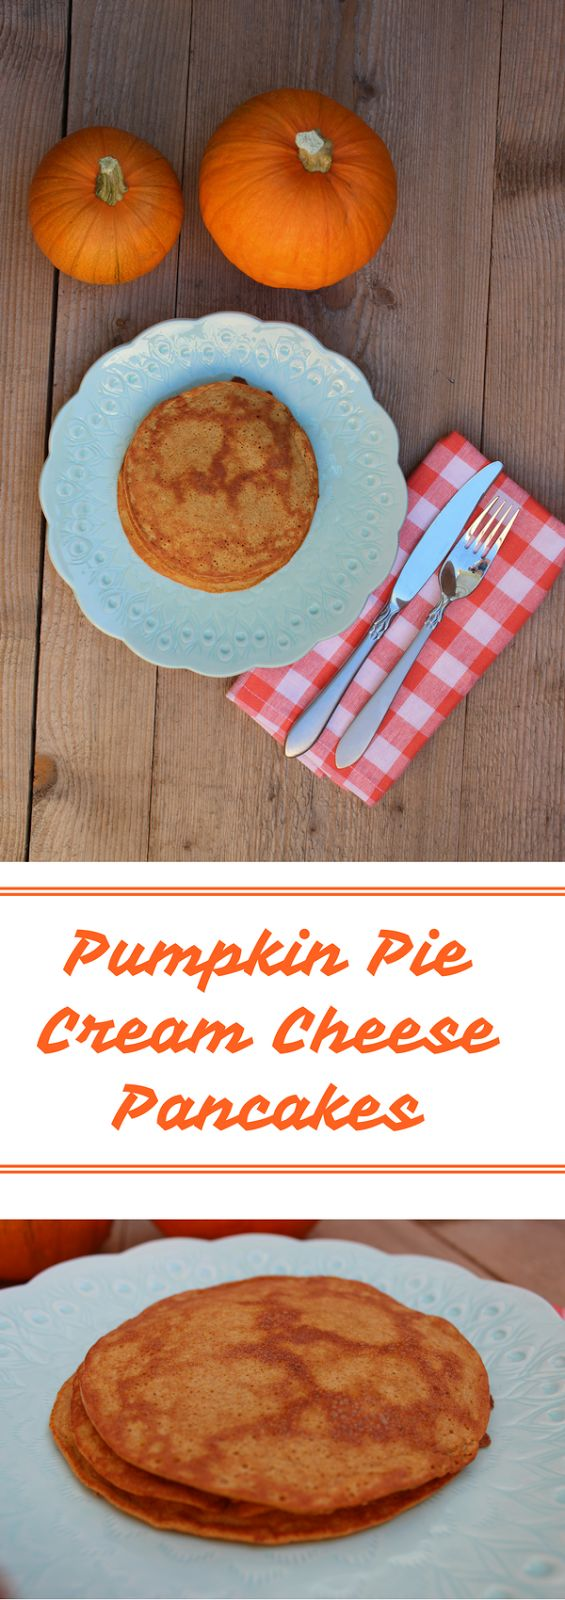 Pumpkin Pie Cream Cheese Pancake: low carb, keto, and egg fast friendly!